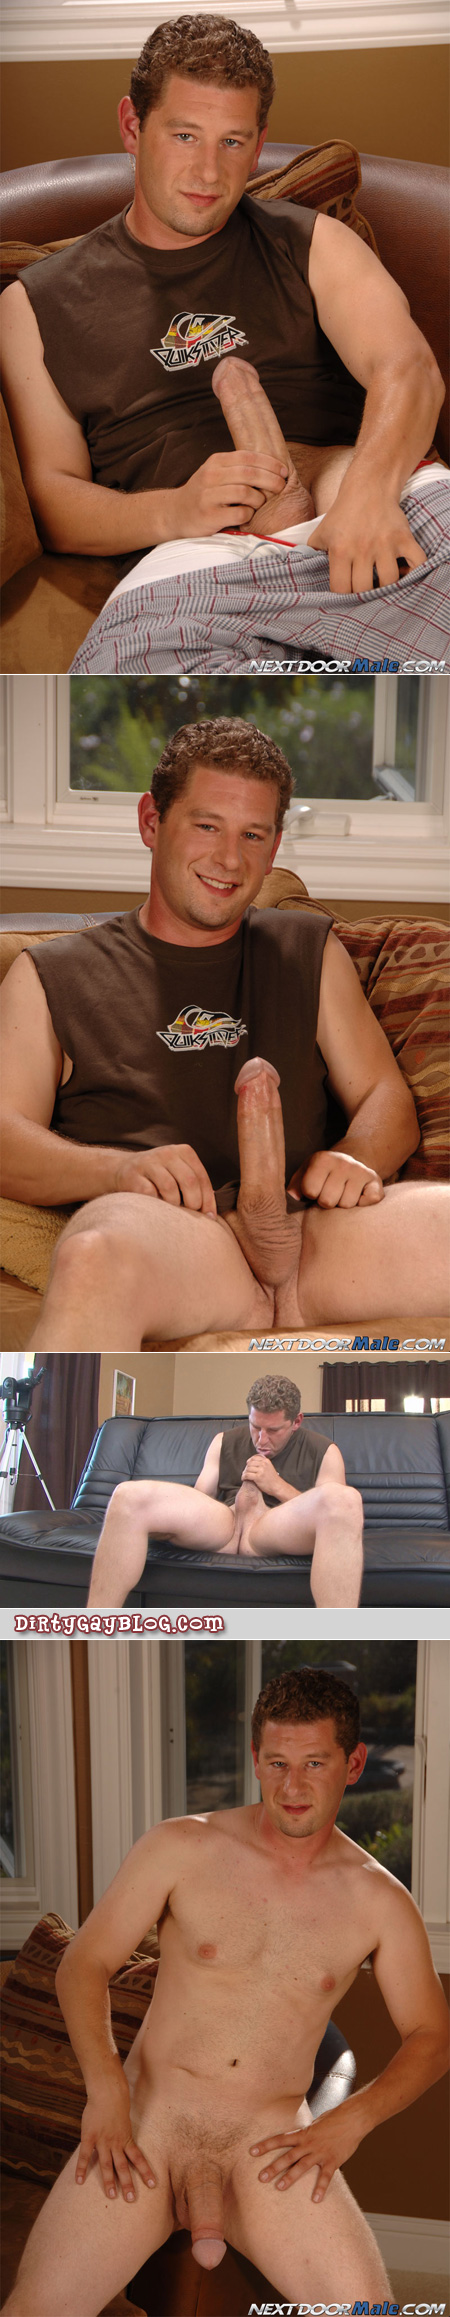 Curly haired straight guy sucks his own enormous cock.